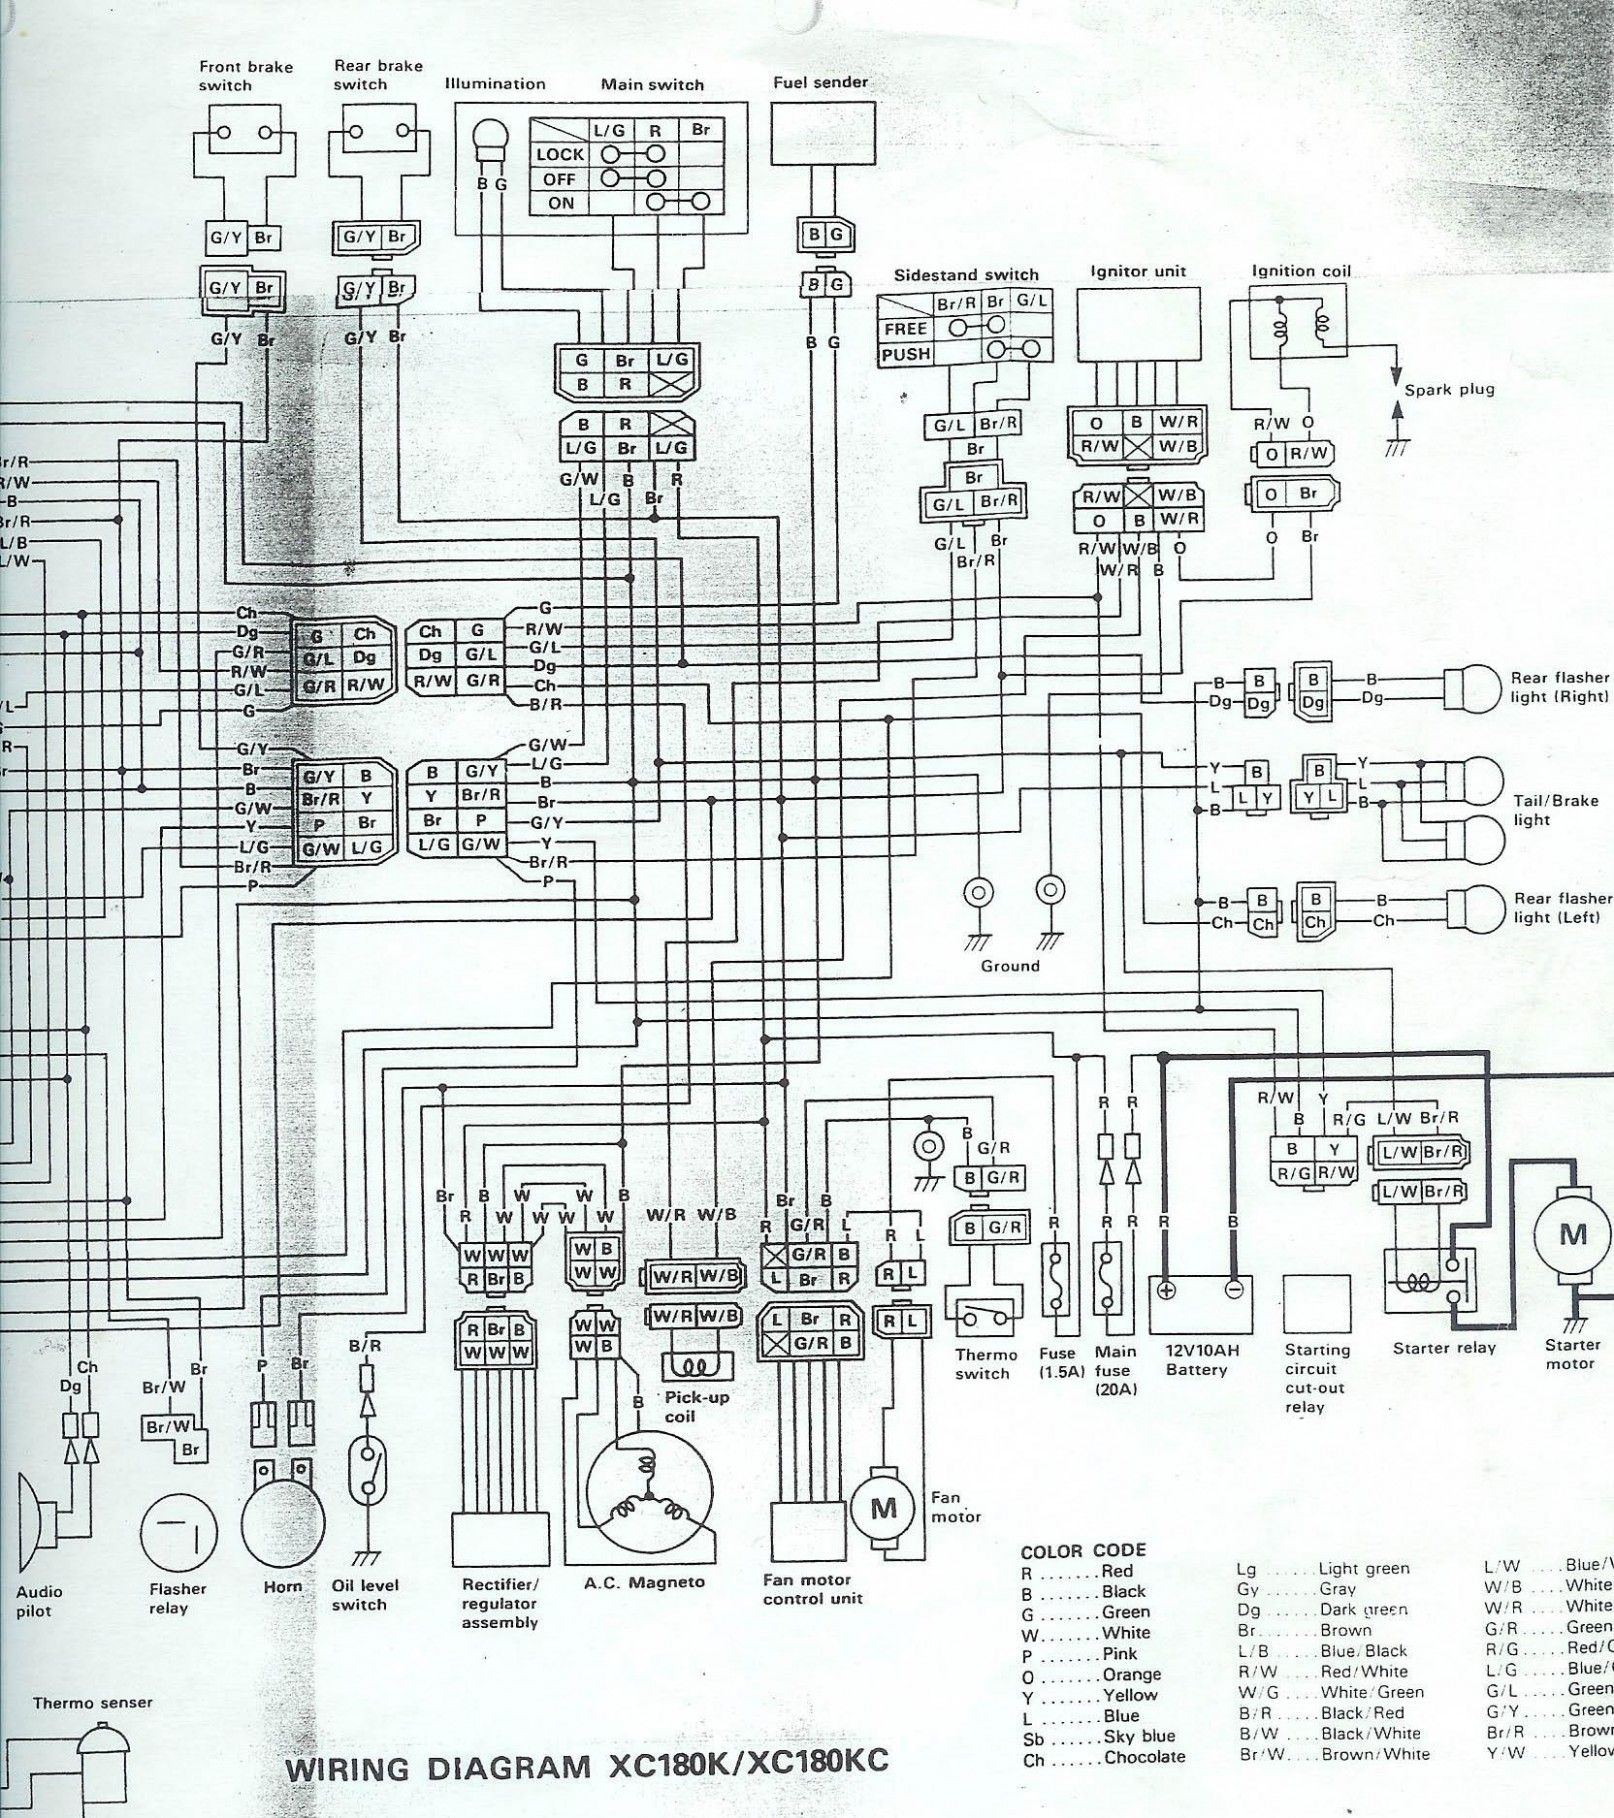 Yamaha Lagenda 6z Engine Diagram Diagram Electrical Diagram Electrical Circuit Diagram